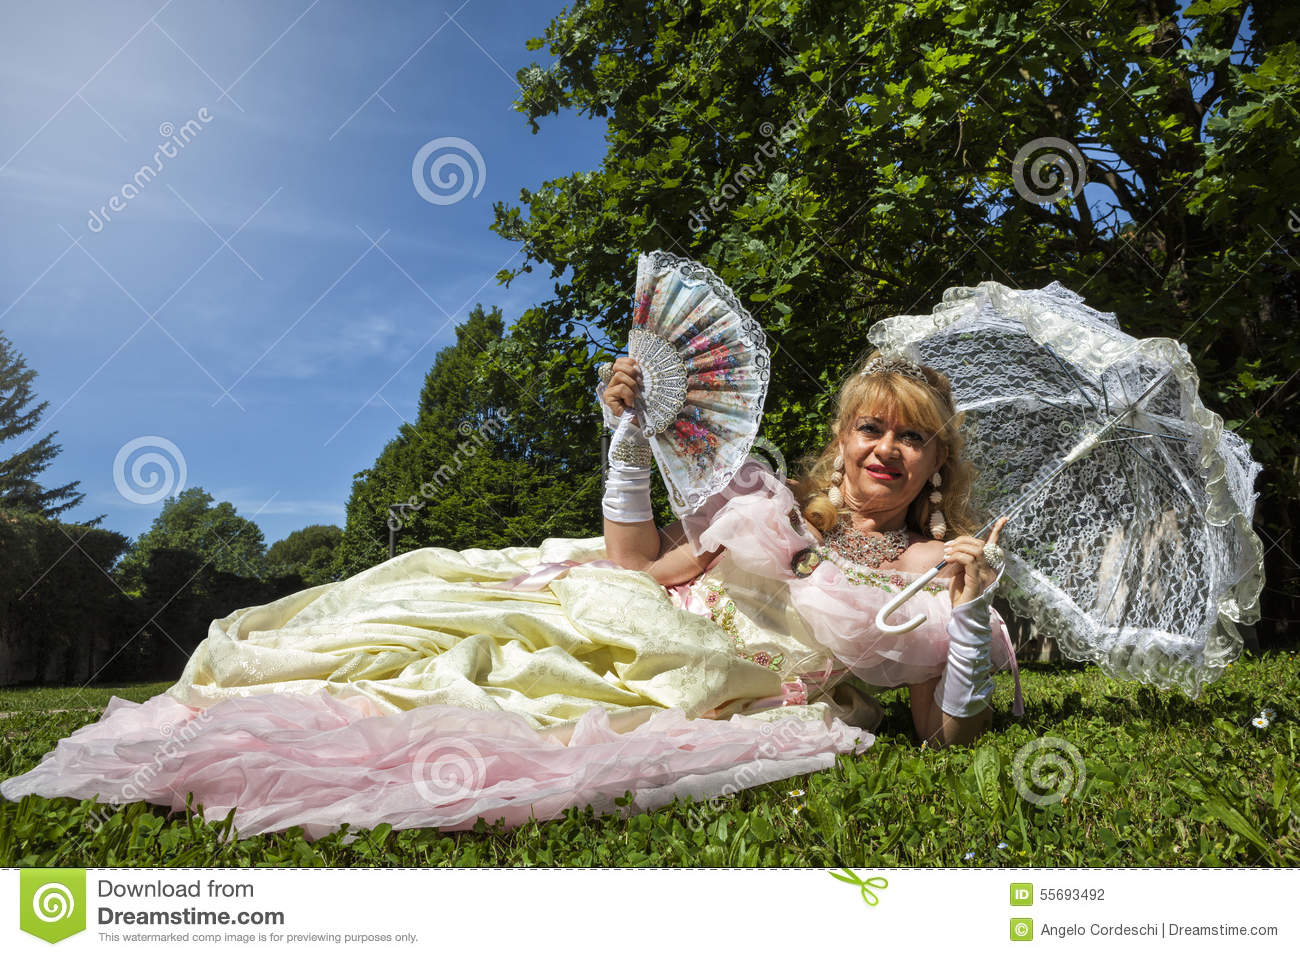 Woman in Venetian costume lying on the green park with white umbrella